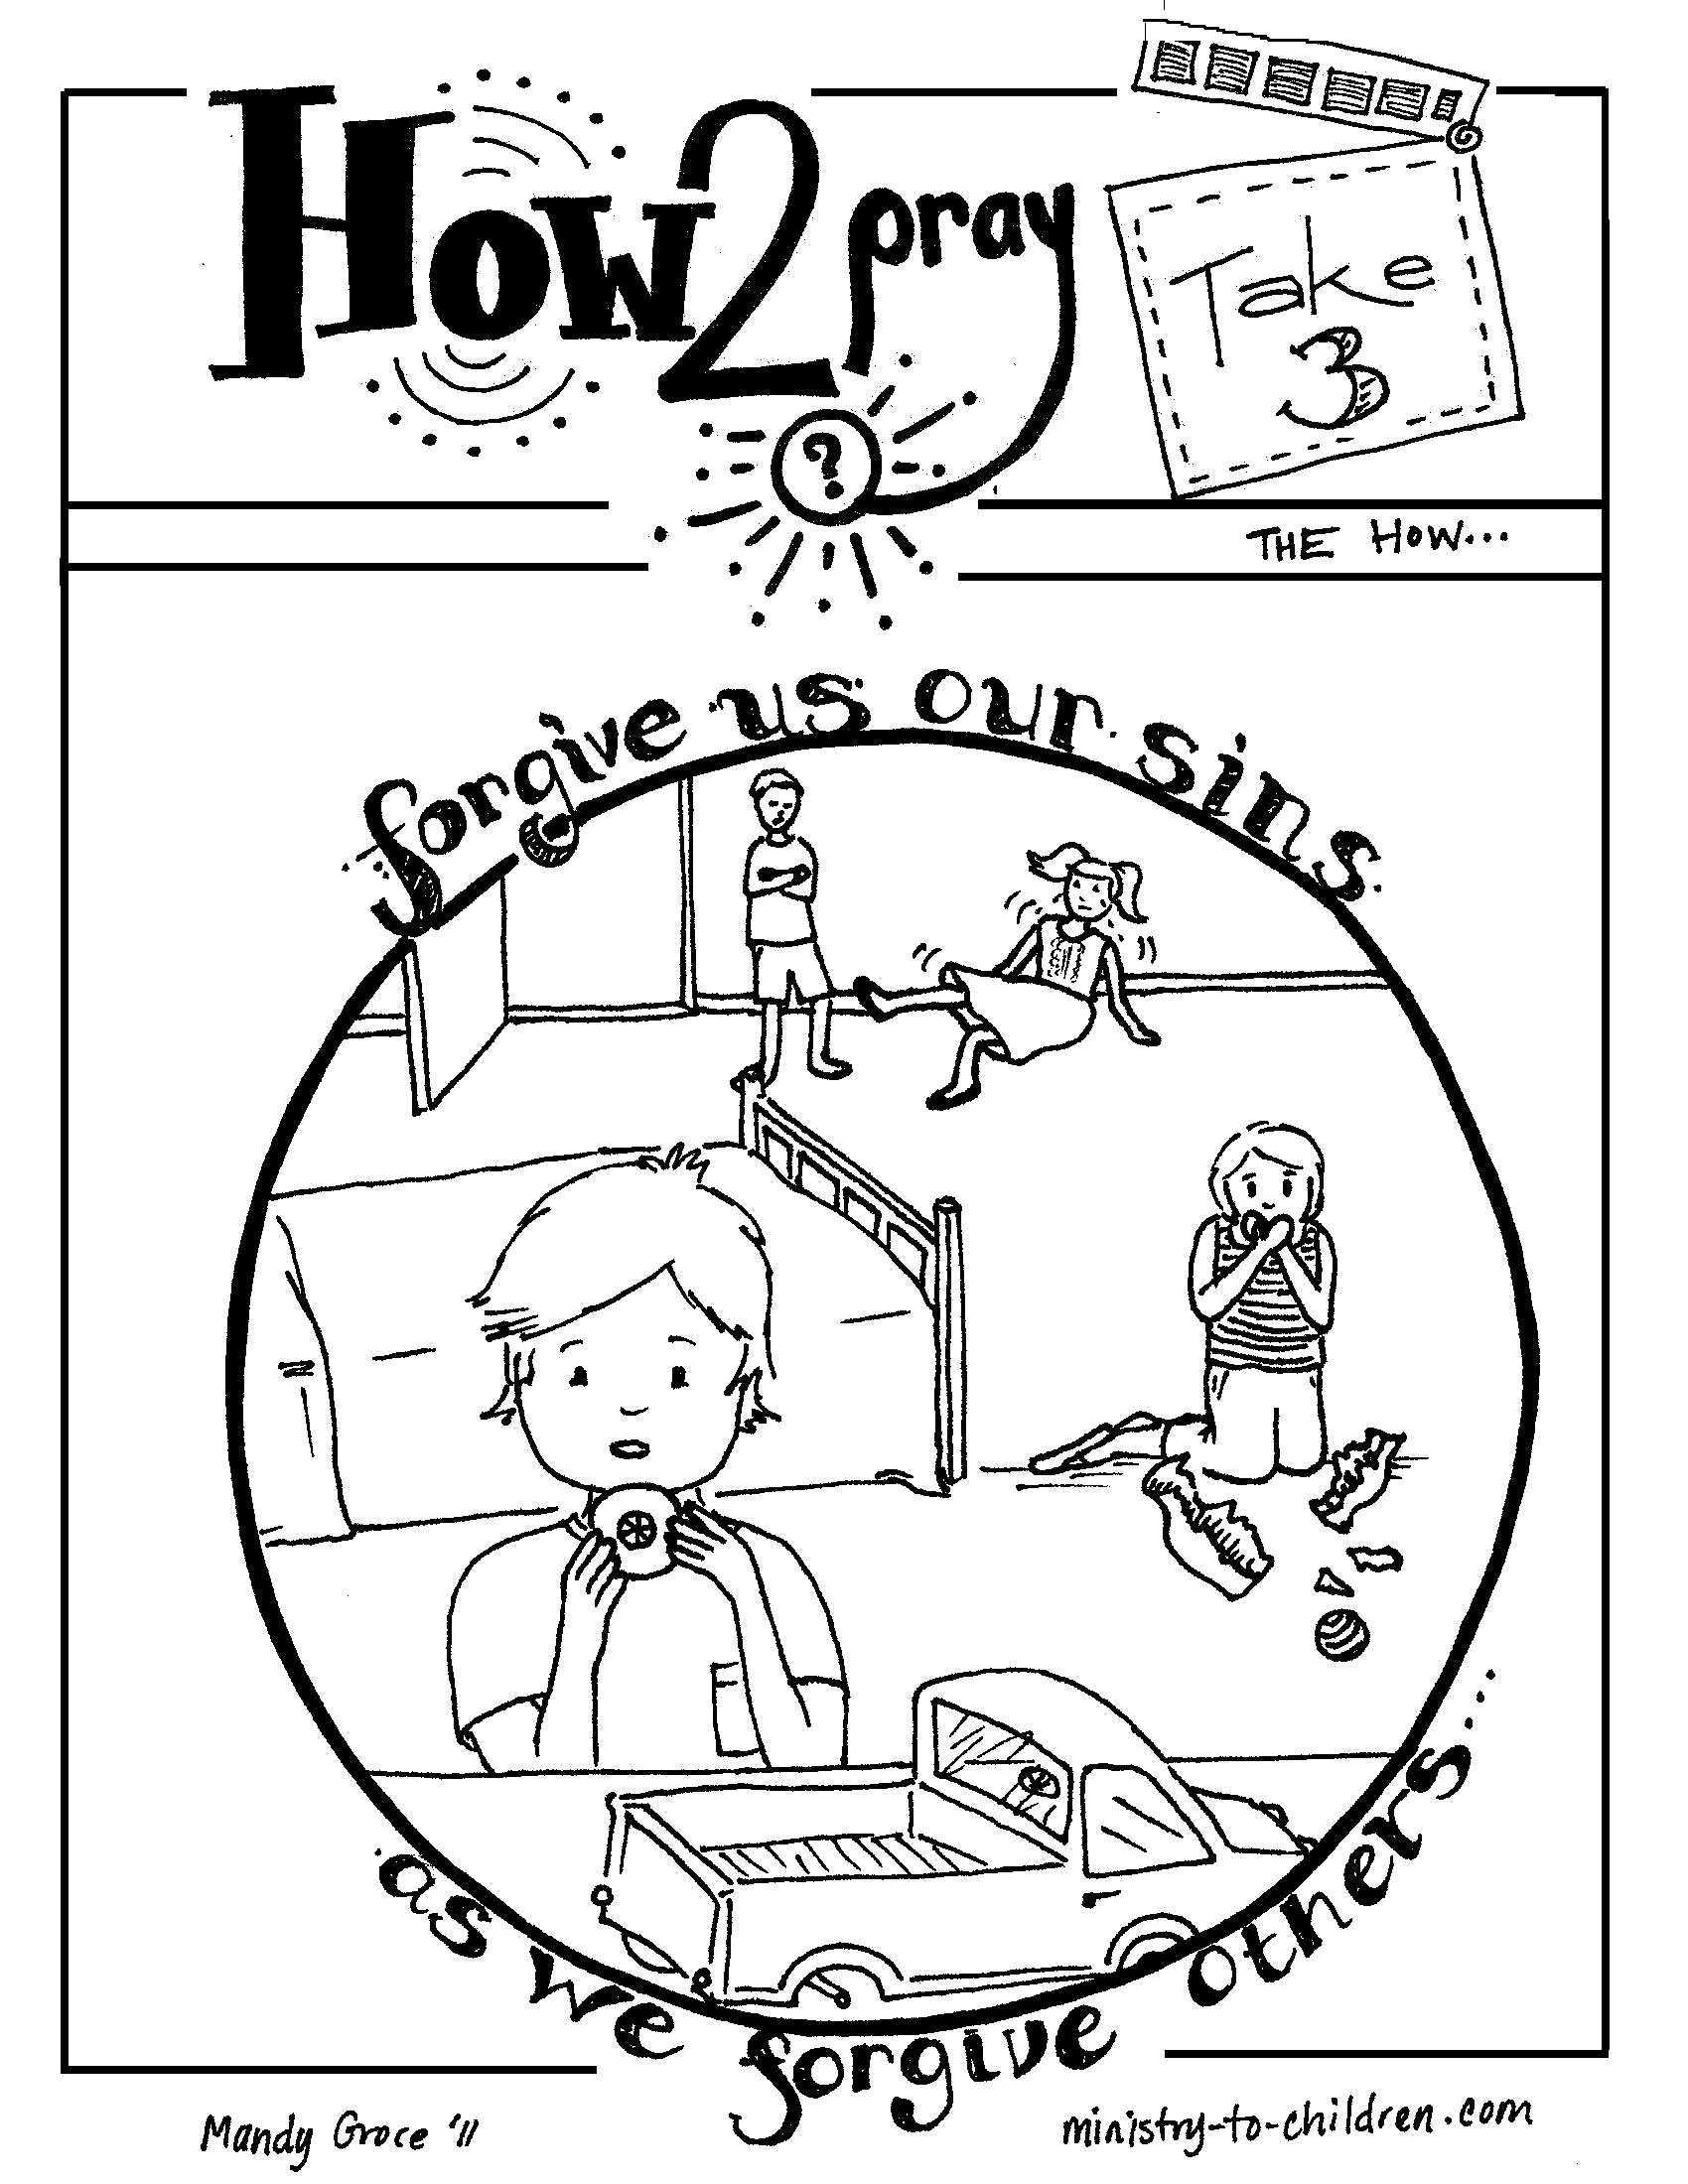 god forgives us coloring pages - photo#4